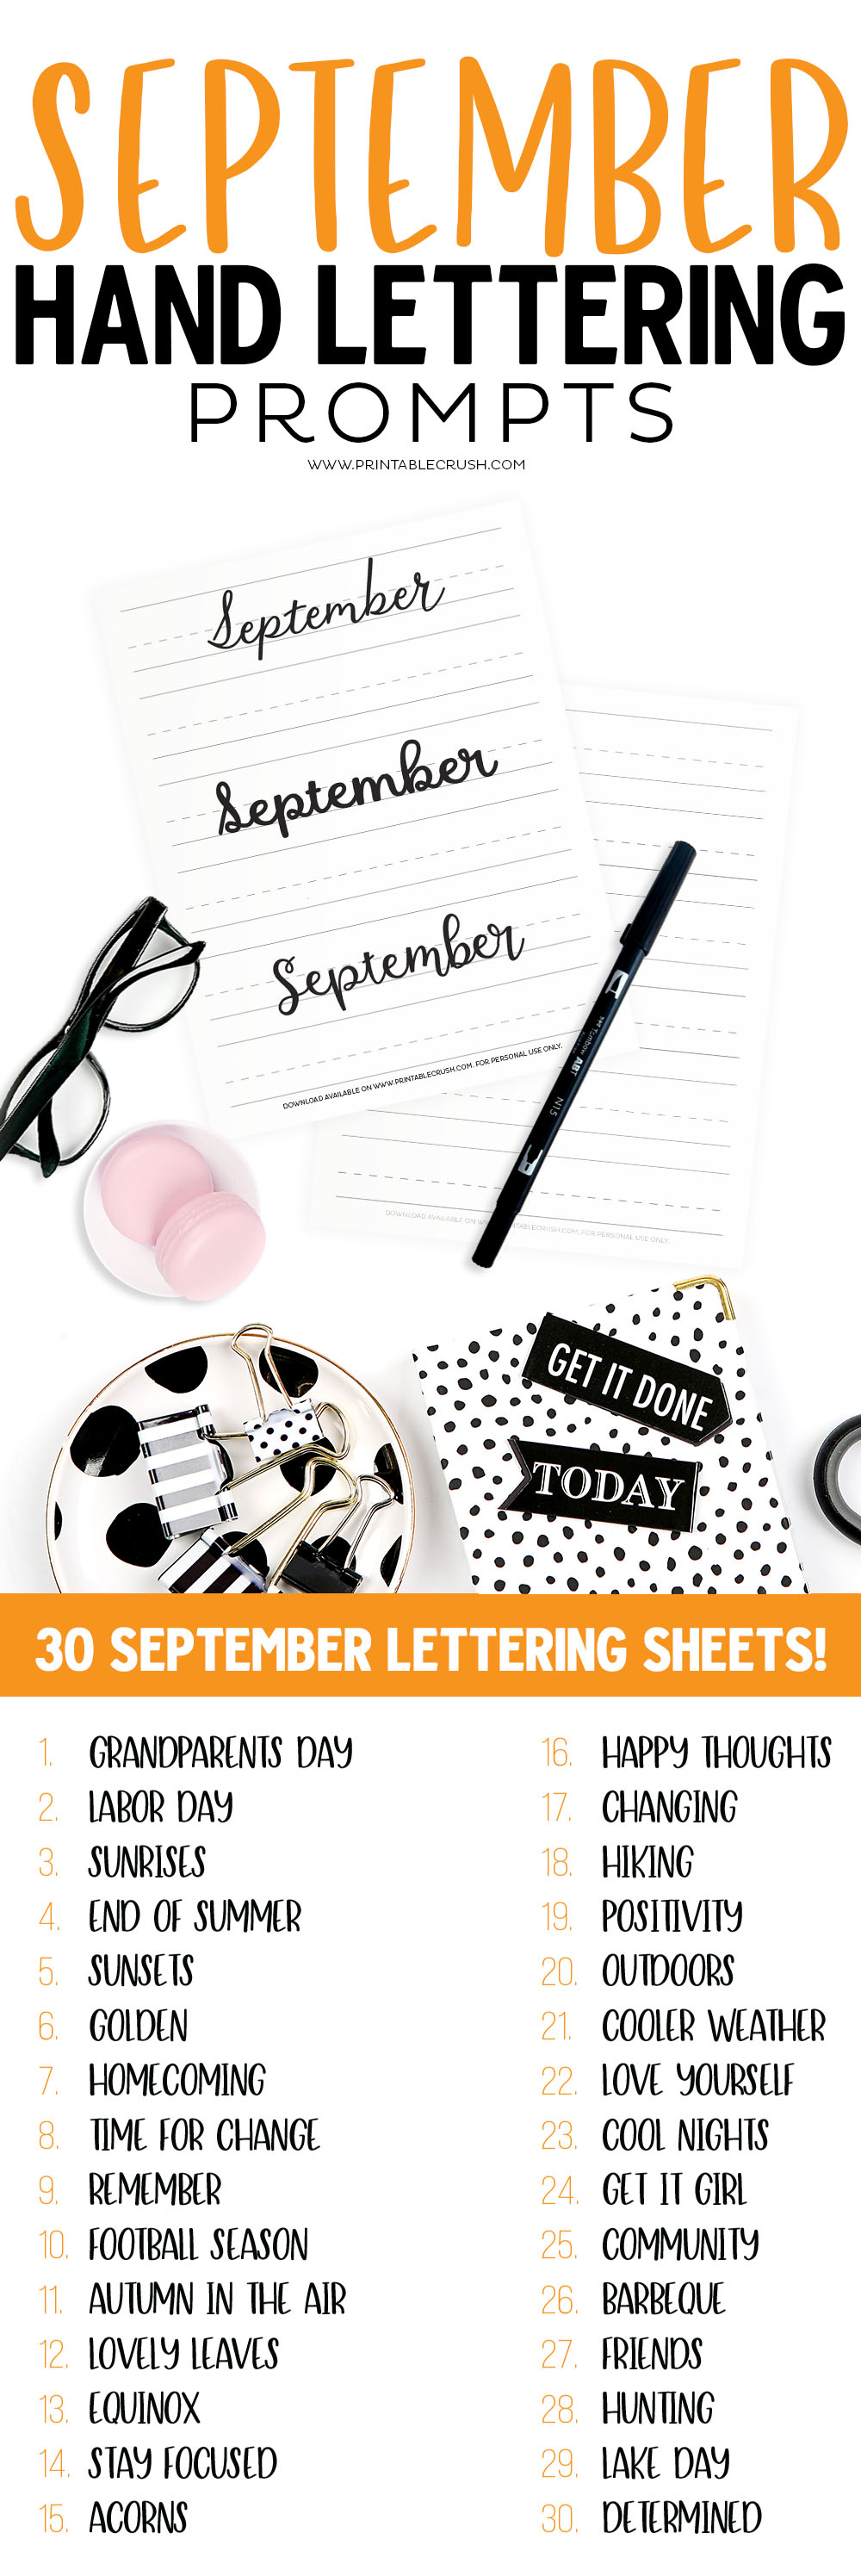 Use these September Hand lettering Prompts to practice lettering skills every day this month! via @printablecrush